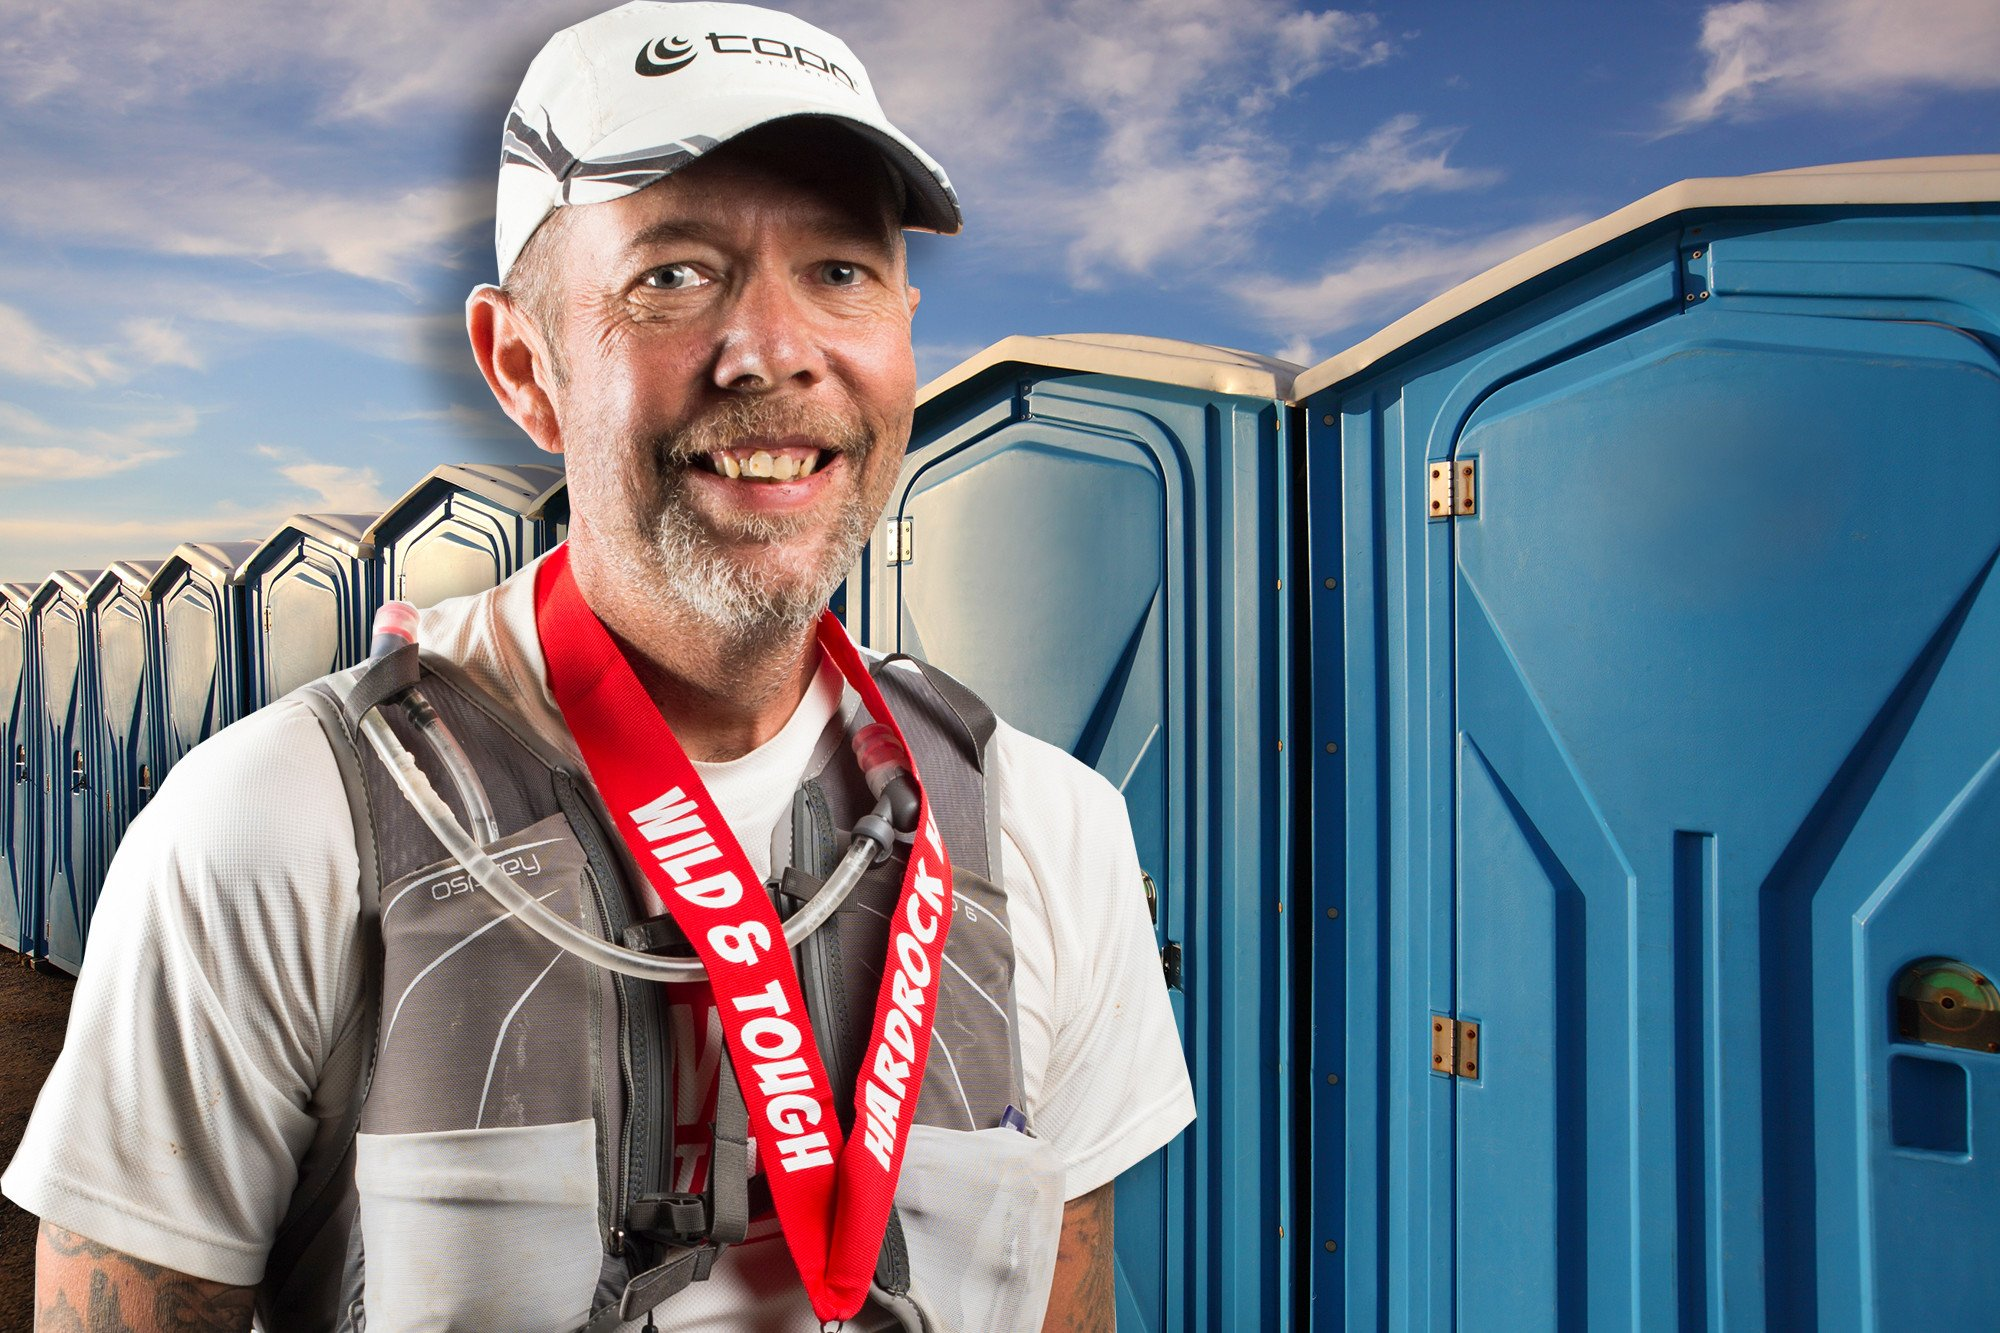 Ultrarunner accused of winning races by hiding in Port-a-Potty